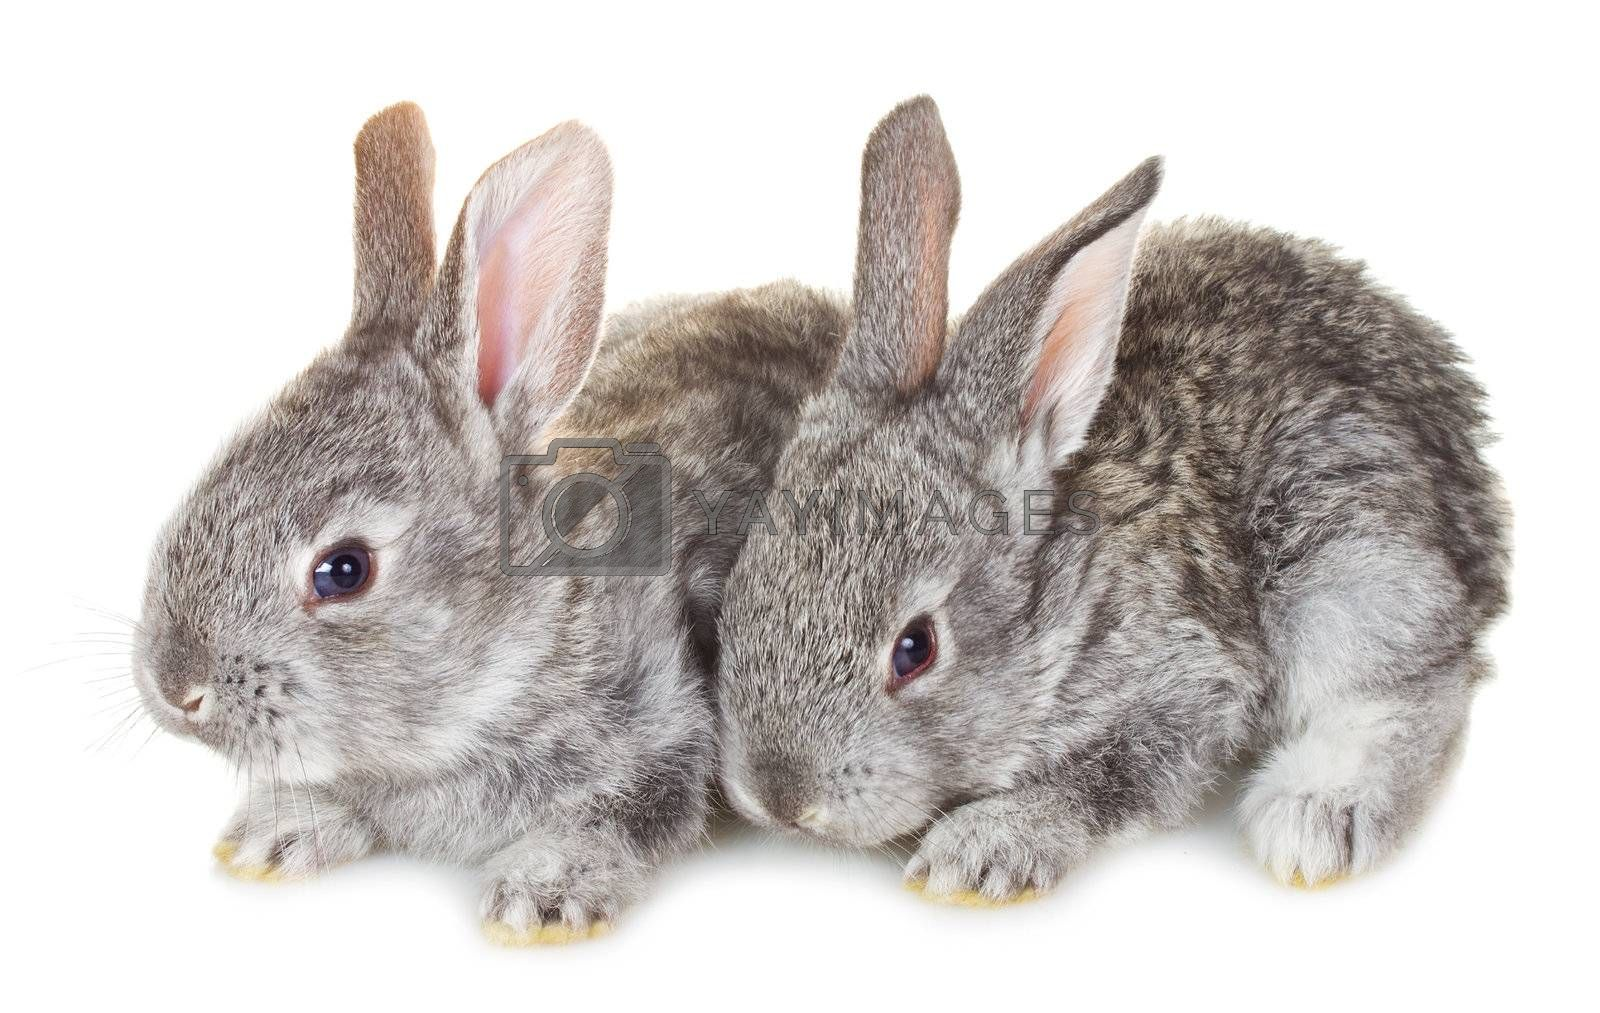 close-up two small gray rabbits, isolated on white